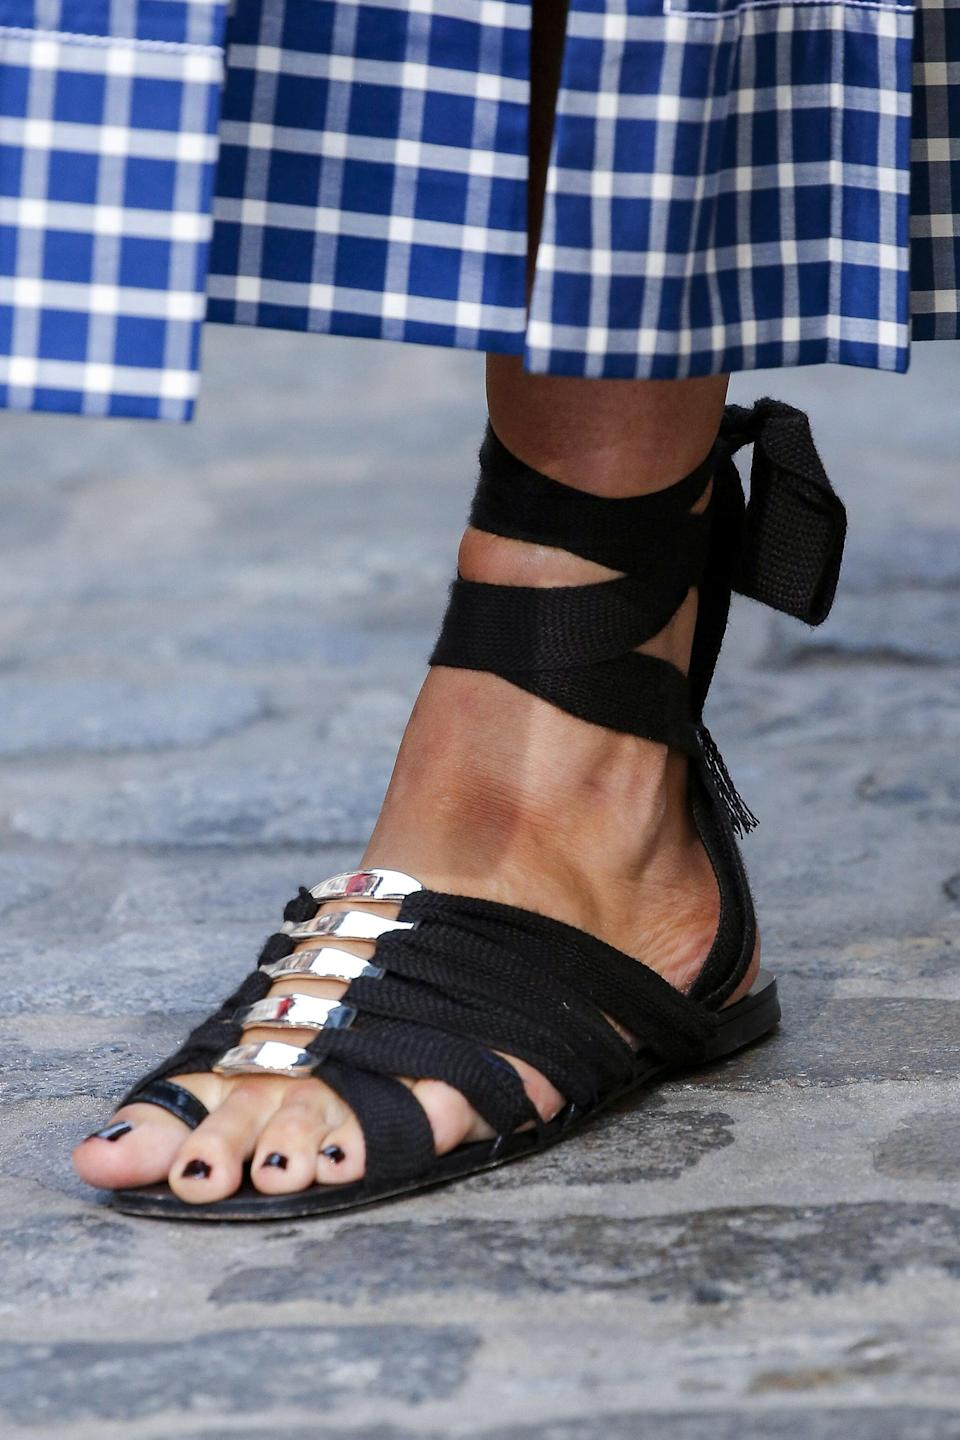 <p>Shoes from Tory Burch spring 2022 collection.</p>